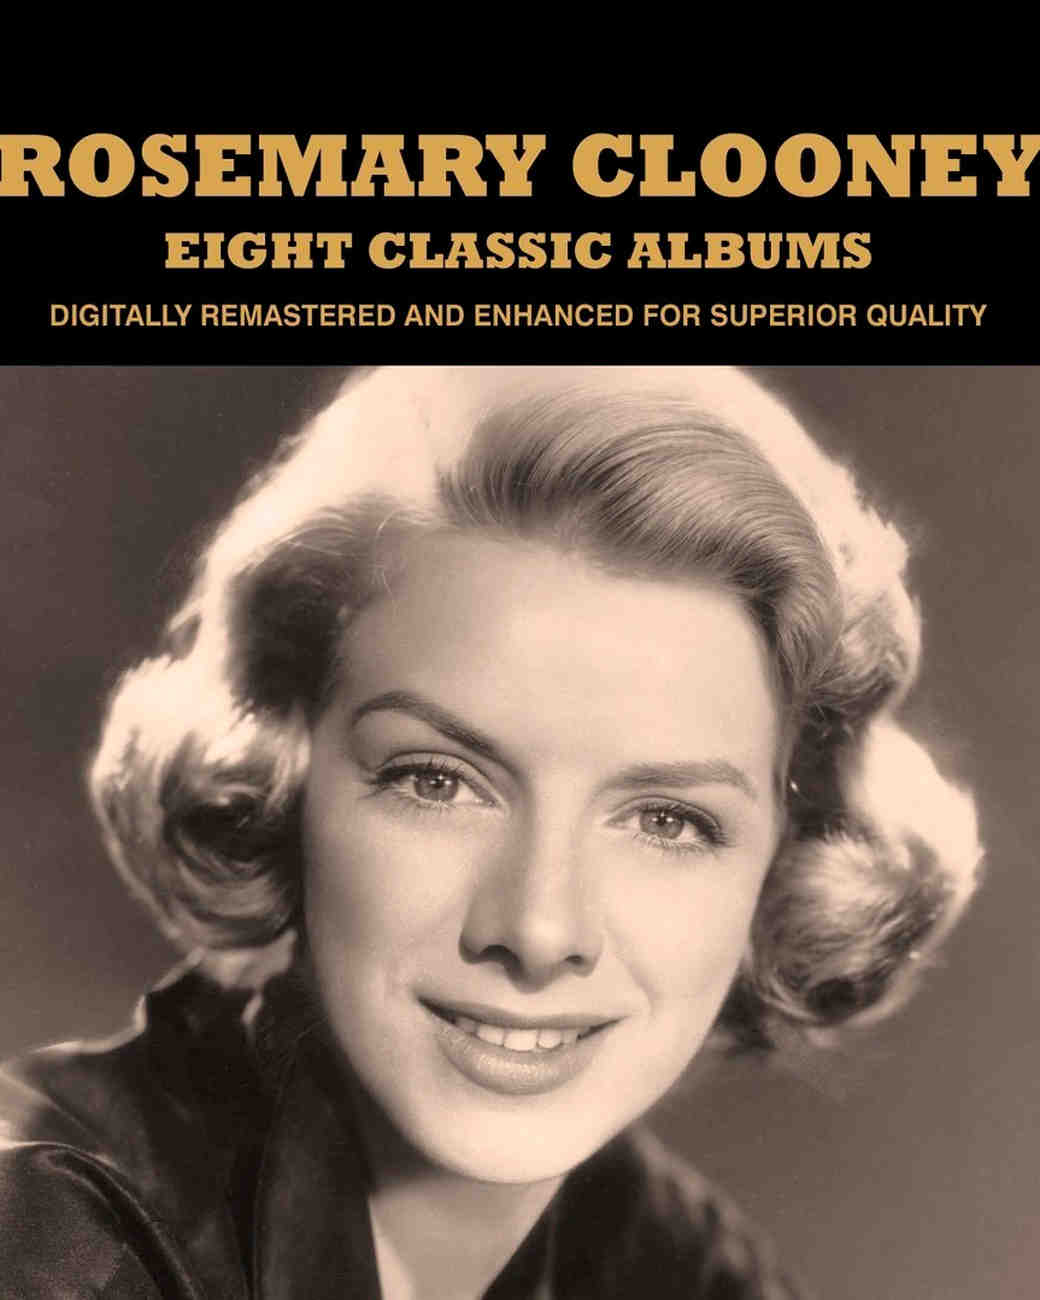 clooney-wedding-rosemary-clooney-classic-albums-0914.jpg